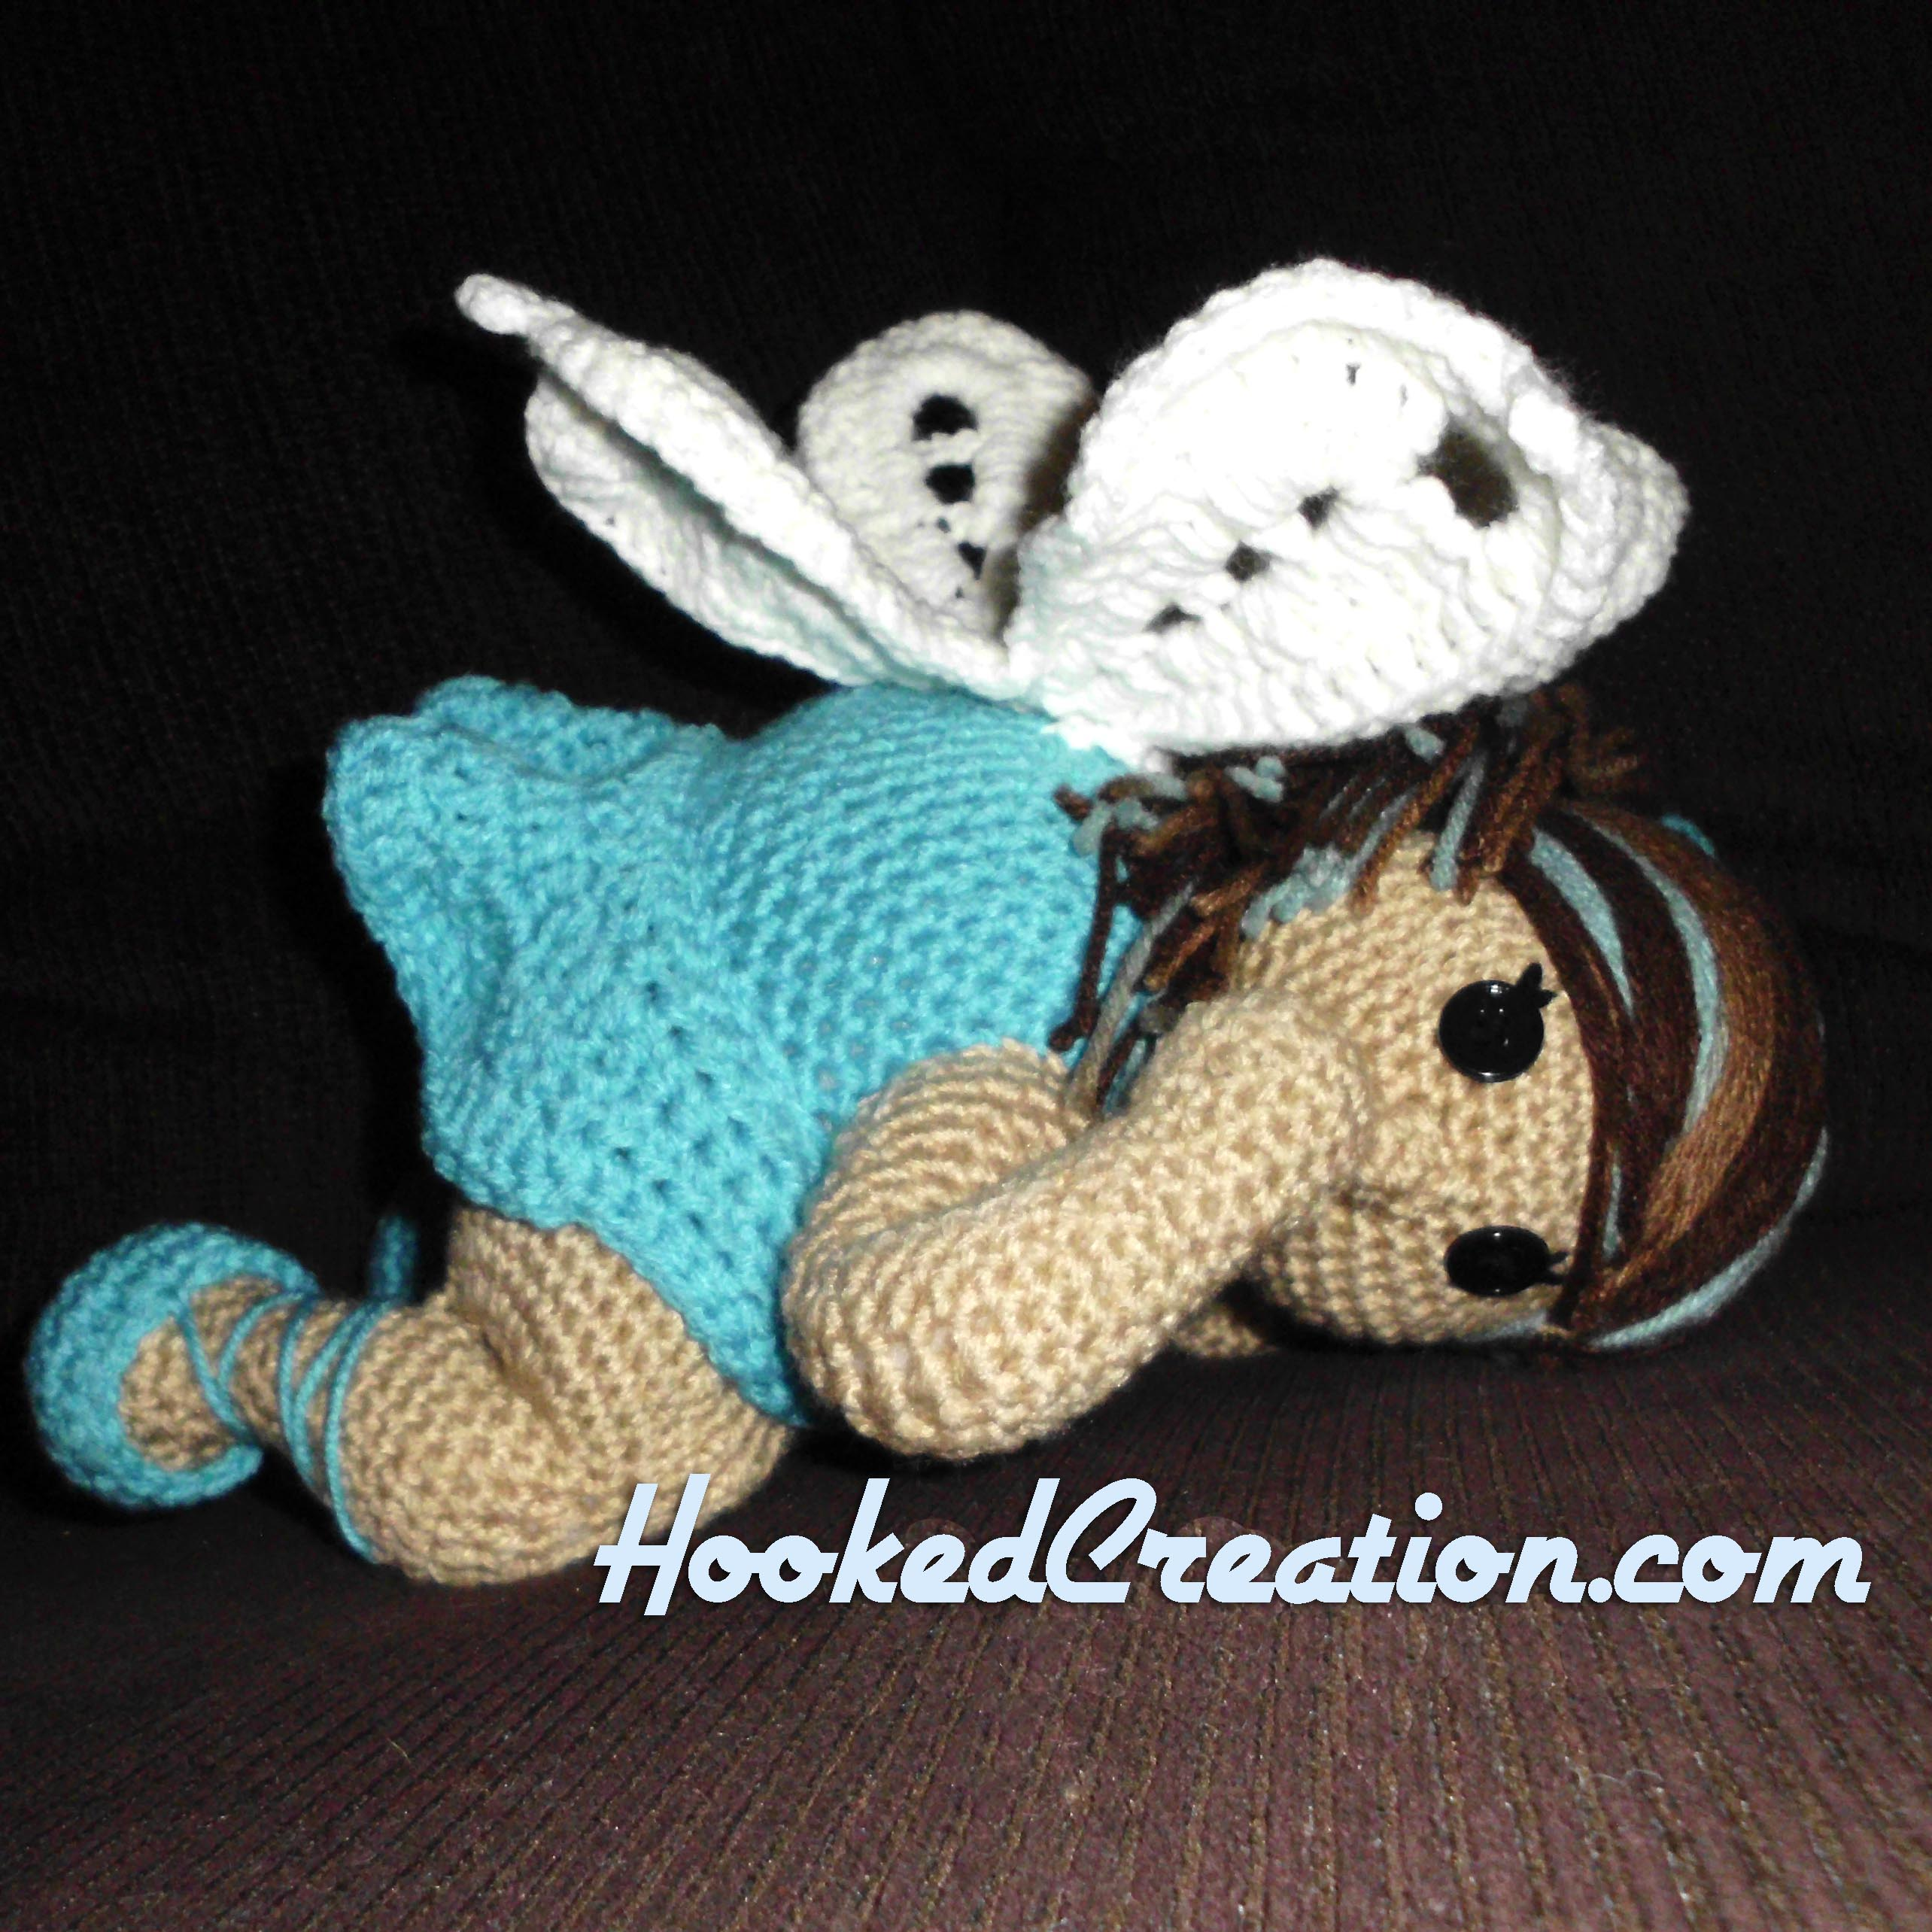 Chubby Fairy Crochet Pattern - Amigurumi - PDF Download